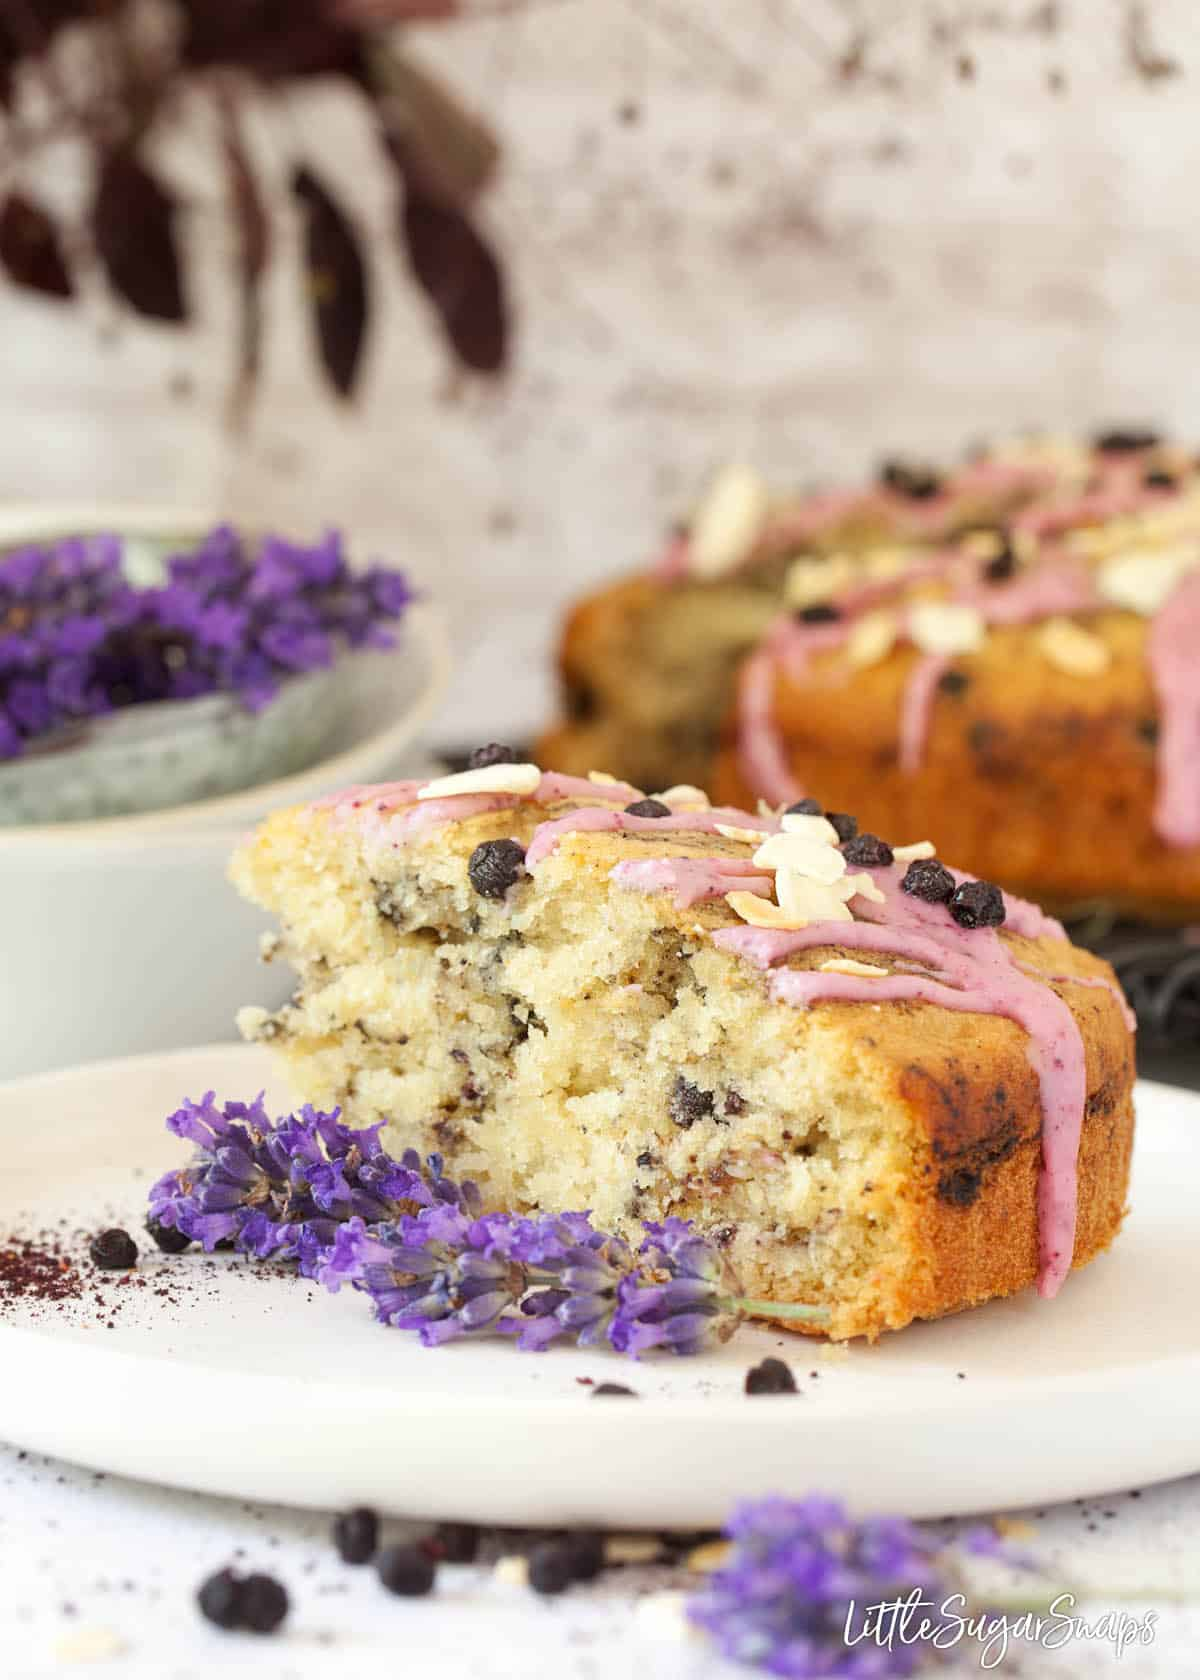 A slice of vegan blueberry cake on a plate with fresh lavender